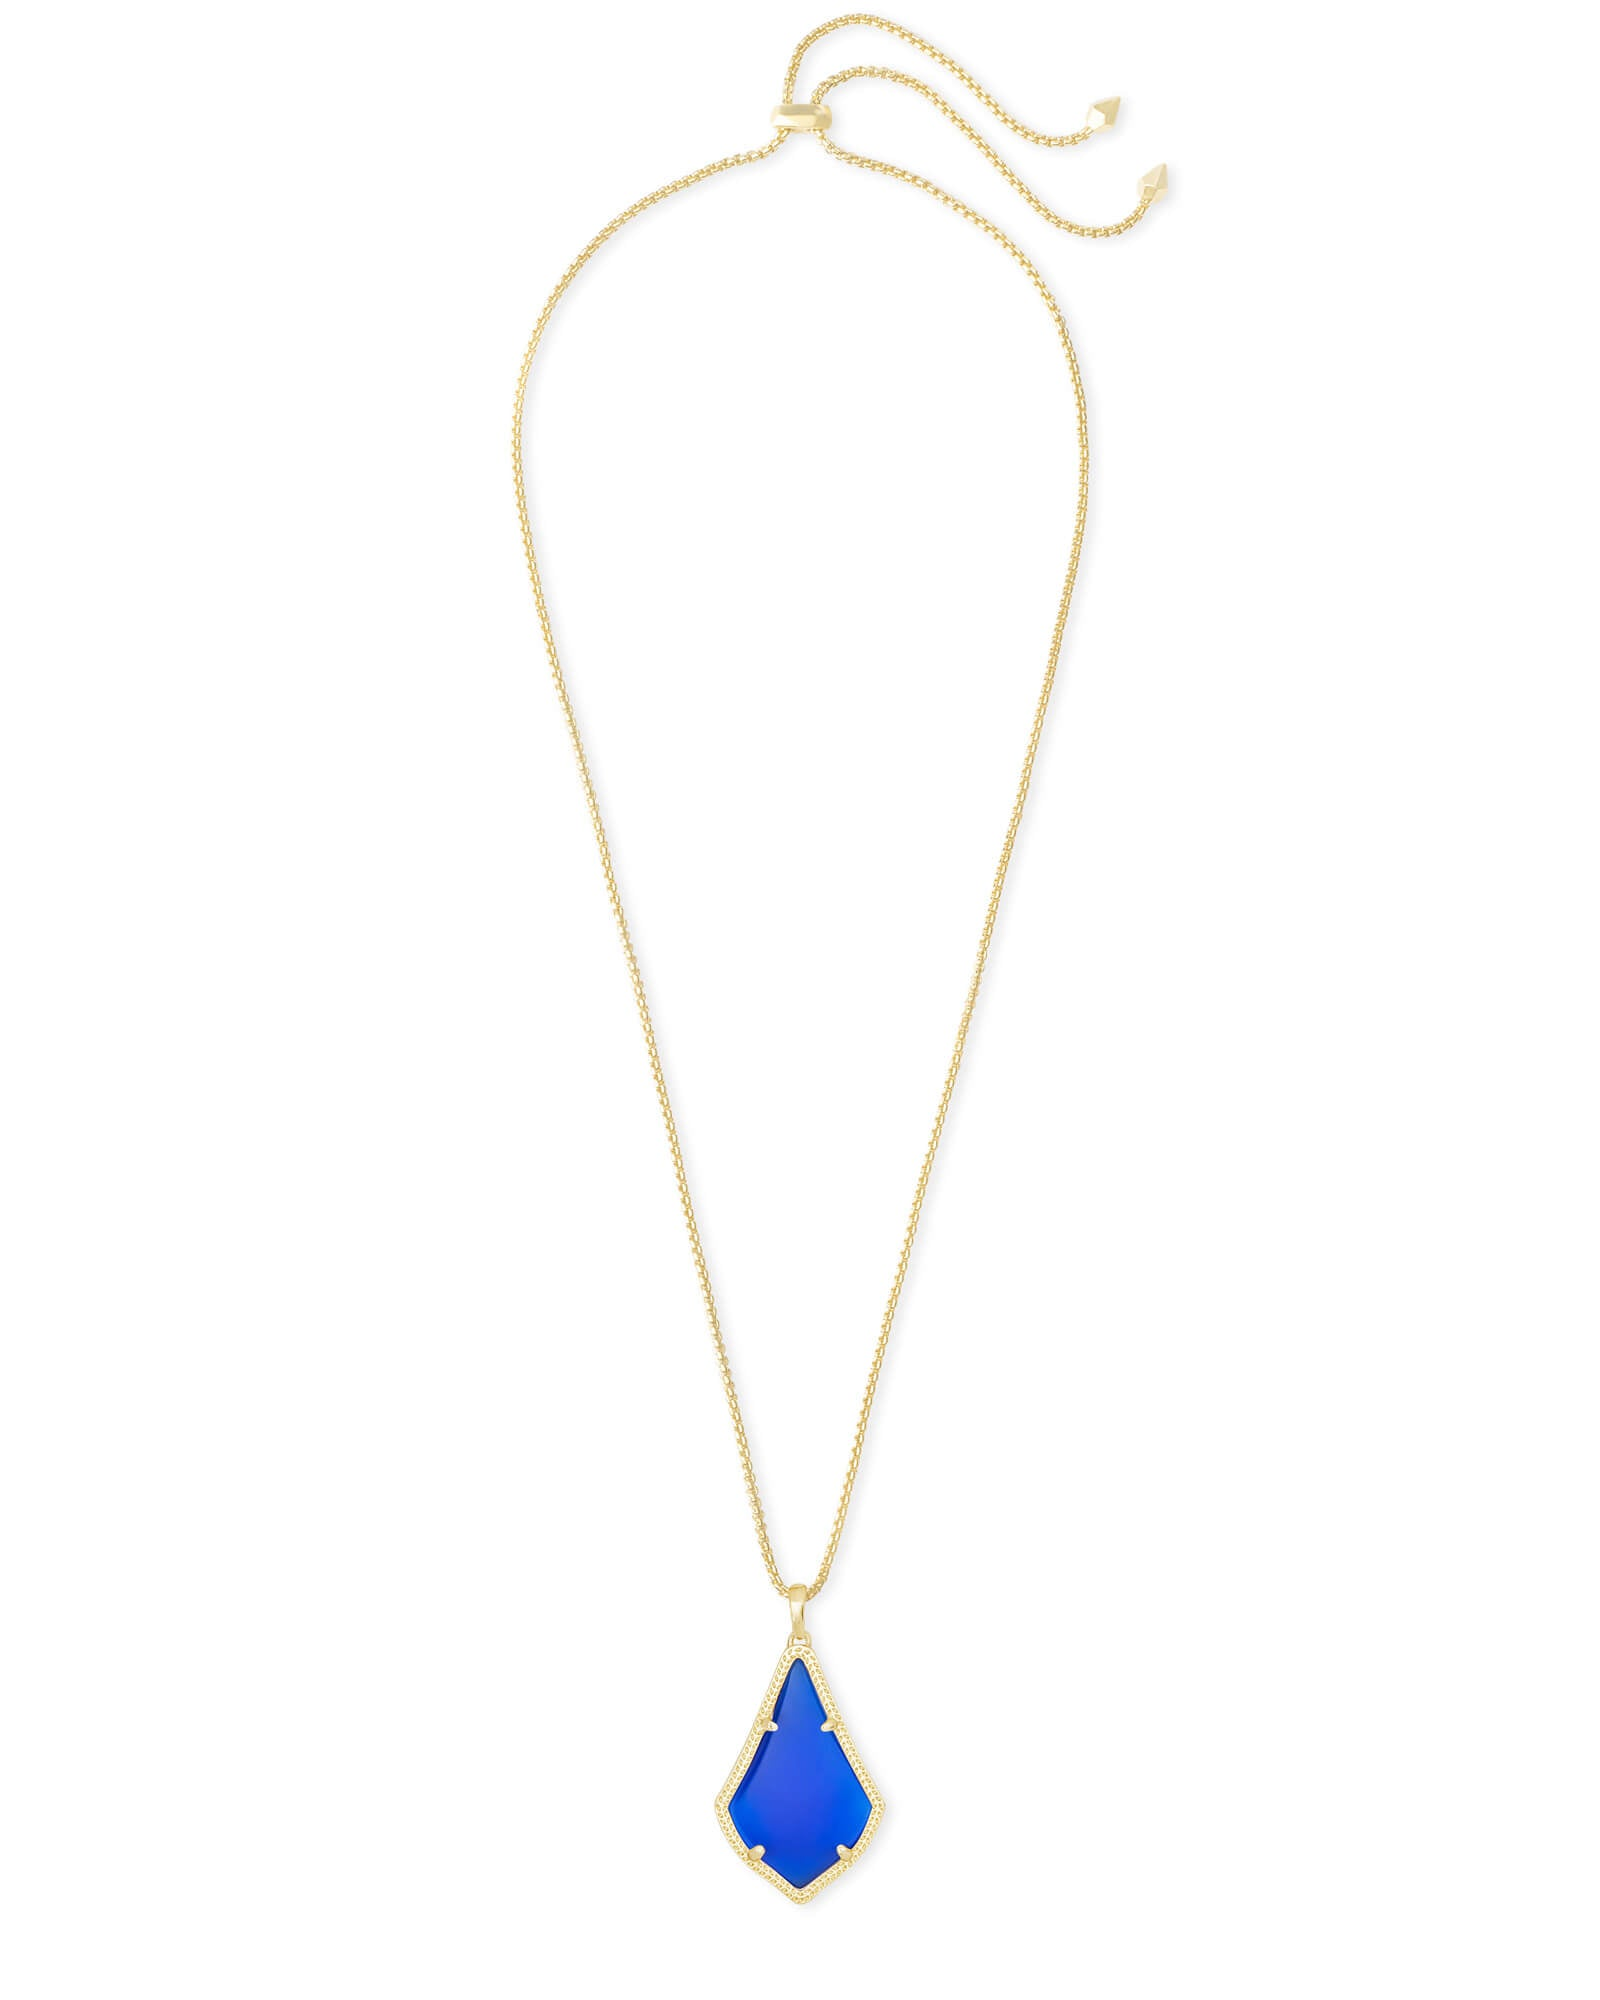 Alex Pendant Necklace in Gold